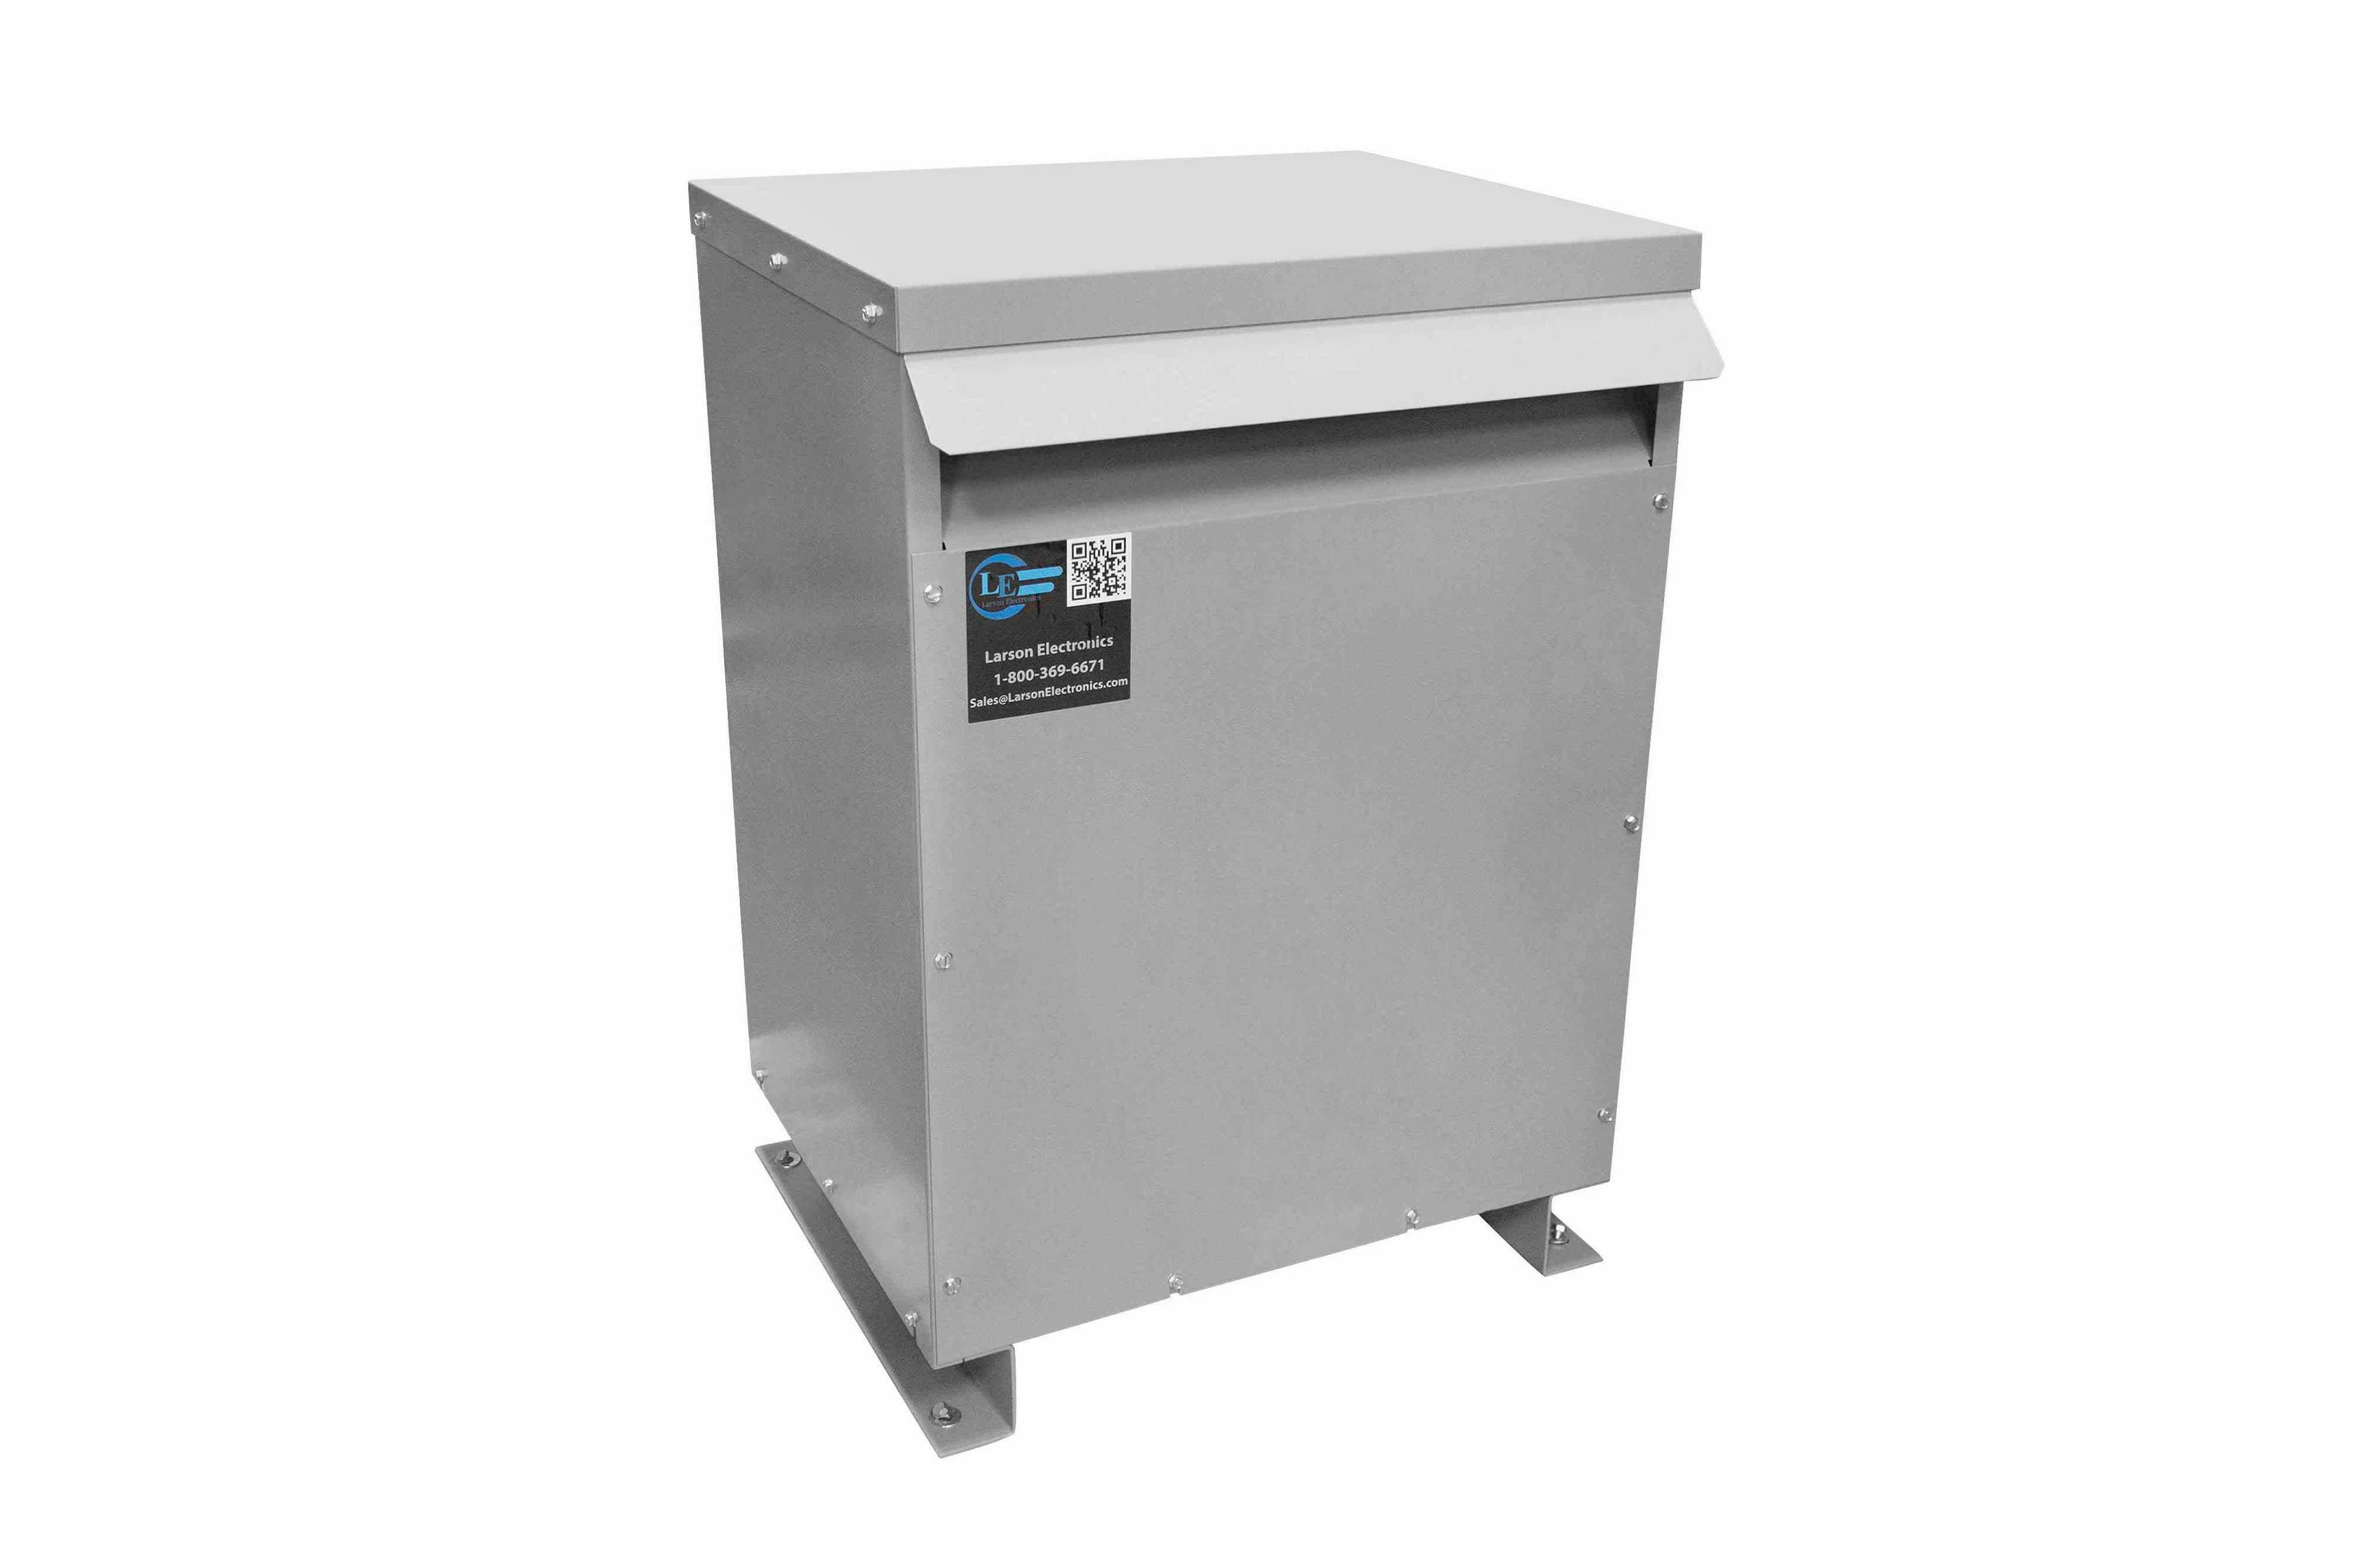 900 kVA 3PH Isolation Transformer, 400V Wye Primary, 240V Delta Secondary, N3R, Ventilated, 60 Hz